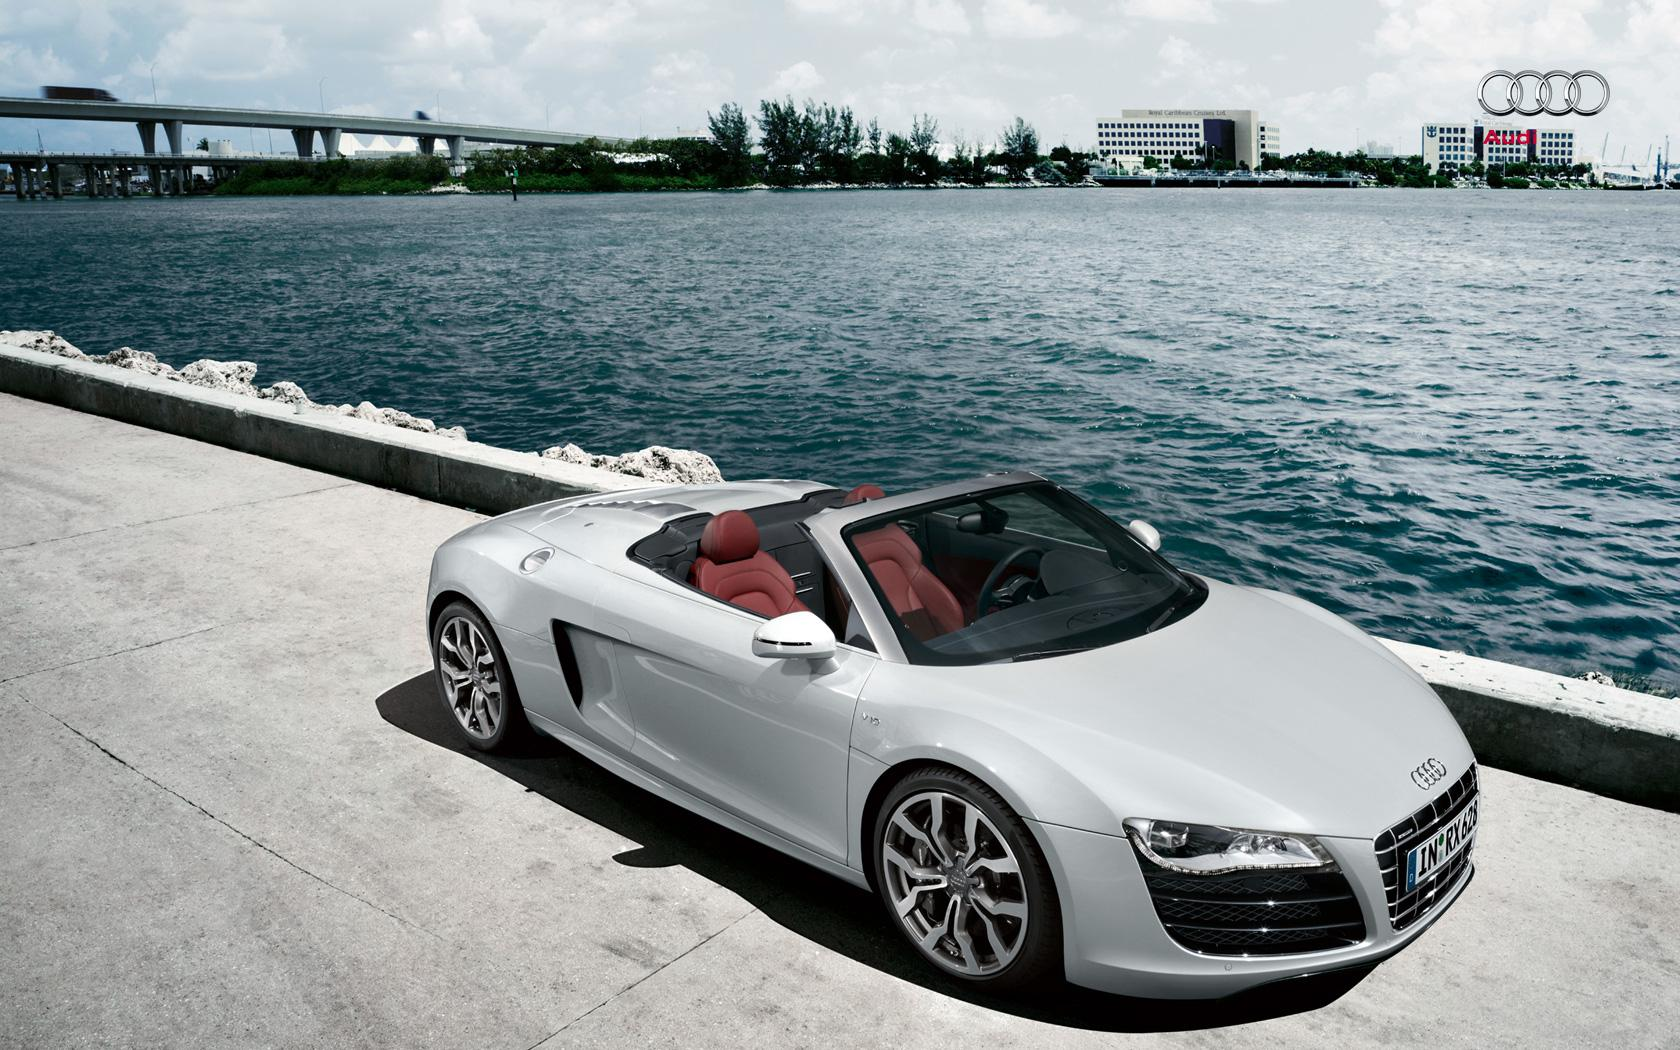 2010 Audi R8 Spyder 5.2 FSI Quattro | Top Speed. »